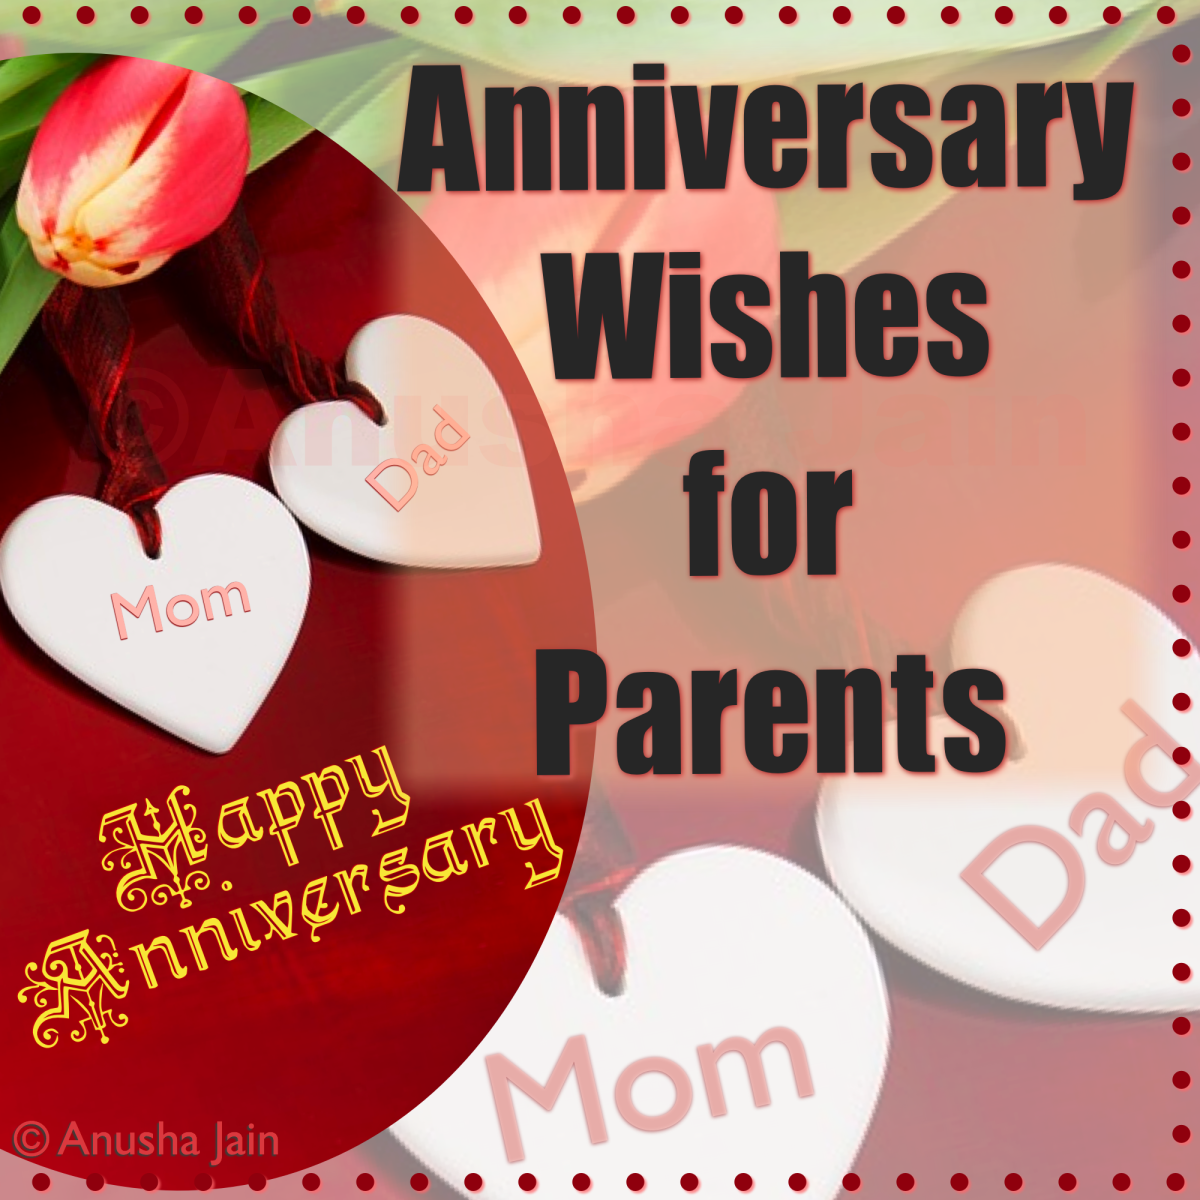 Happy Anniversary Mom & Dad - Poems and Anniversary Quotes for Parents